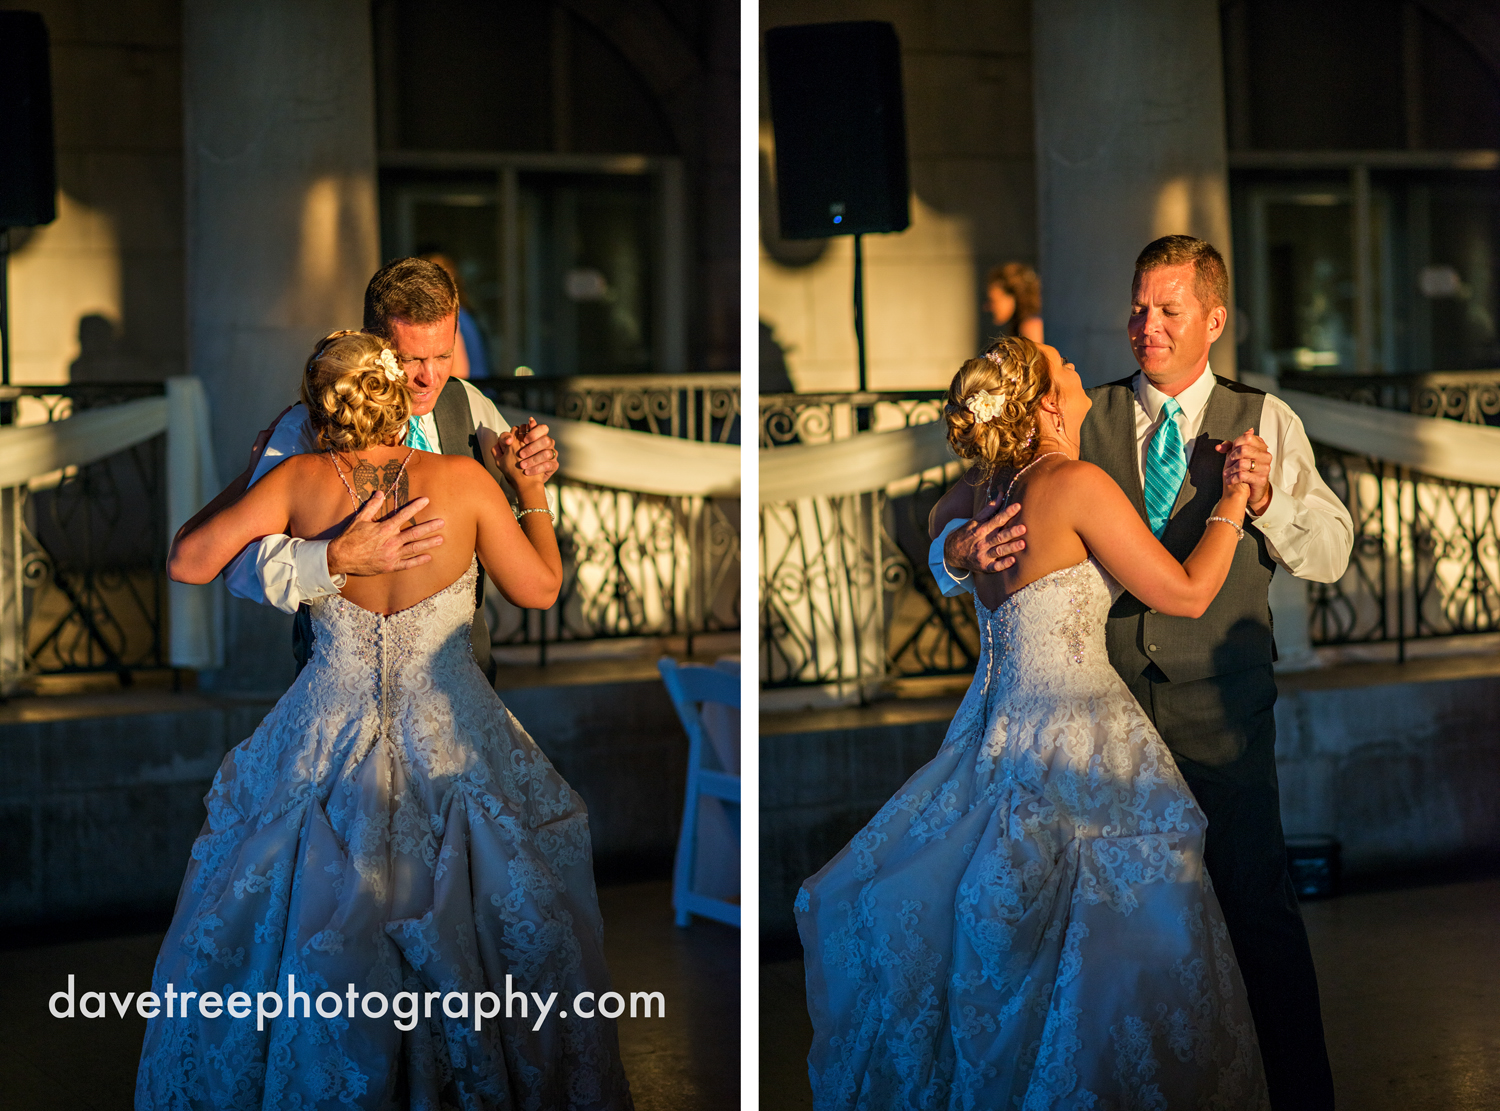 veranda_wedding_photographer_st_joseph_wedding_111.jpg